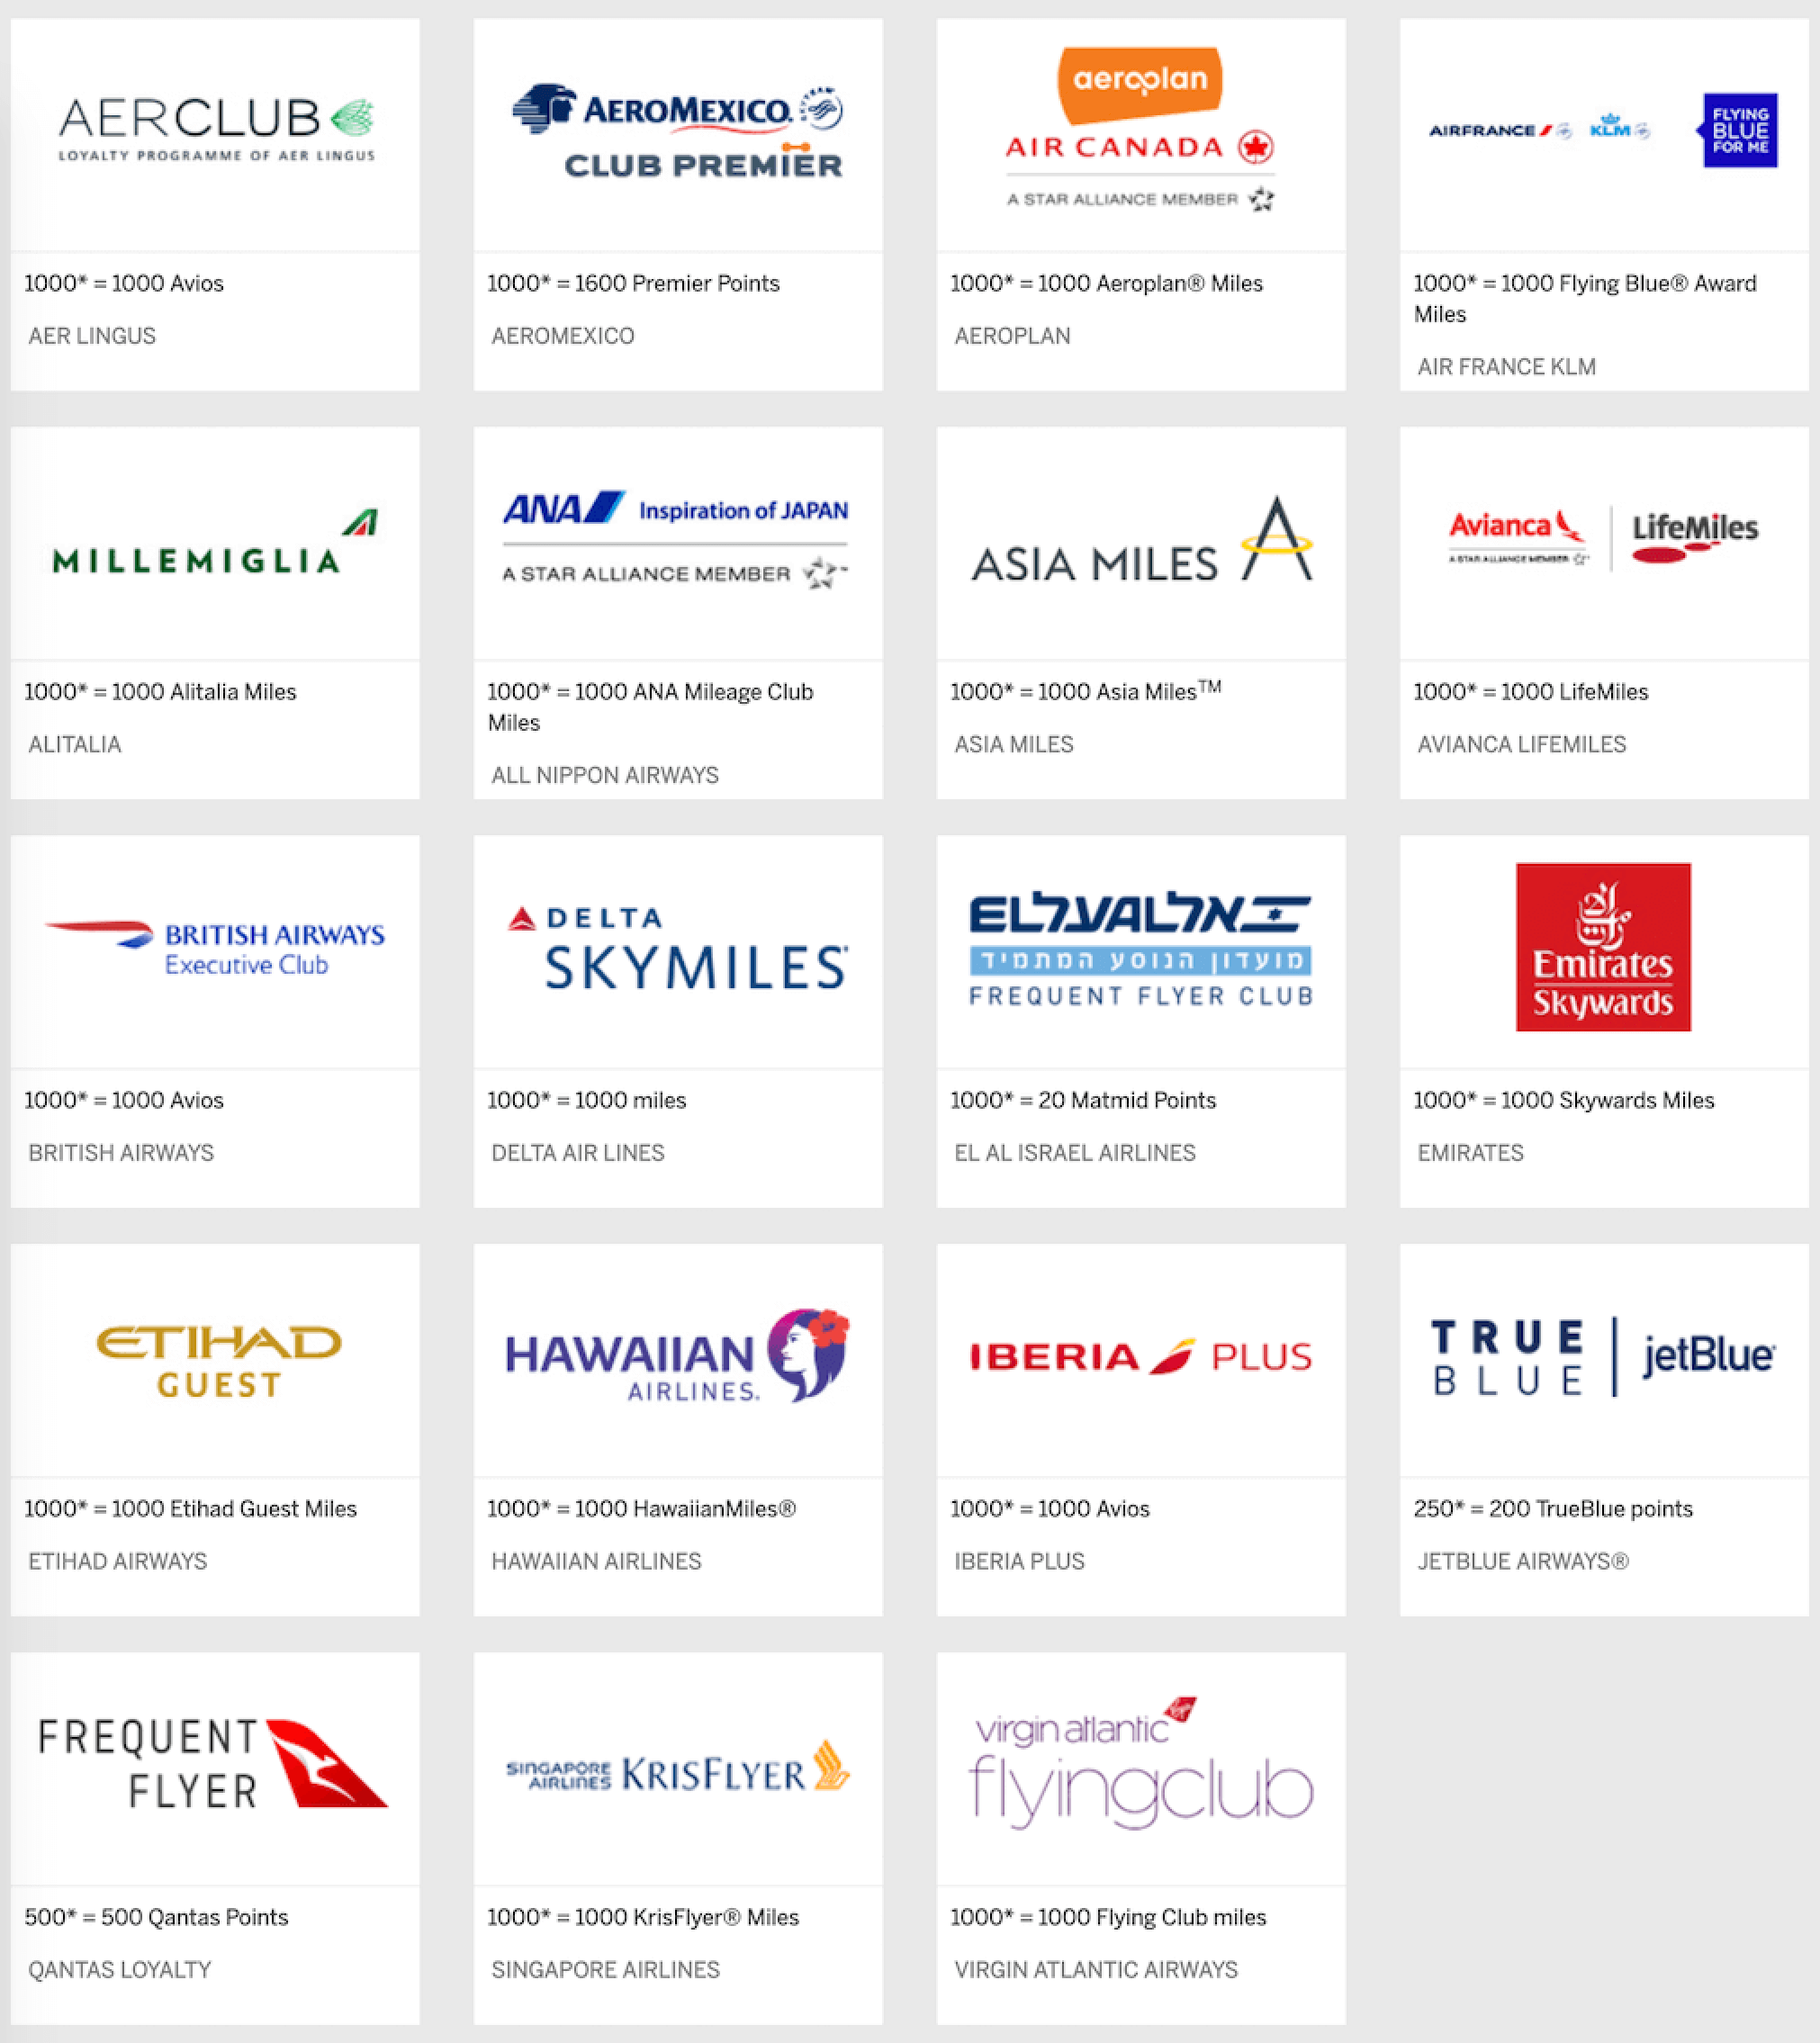 American Express Membership Rewards Airline Transfer Partners